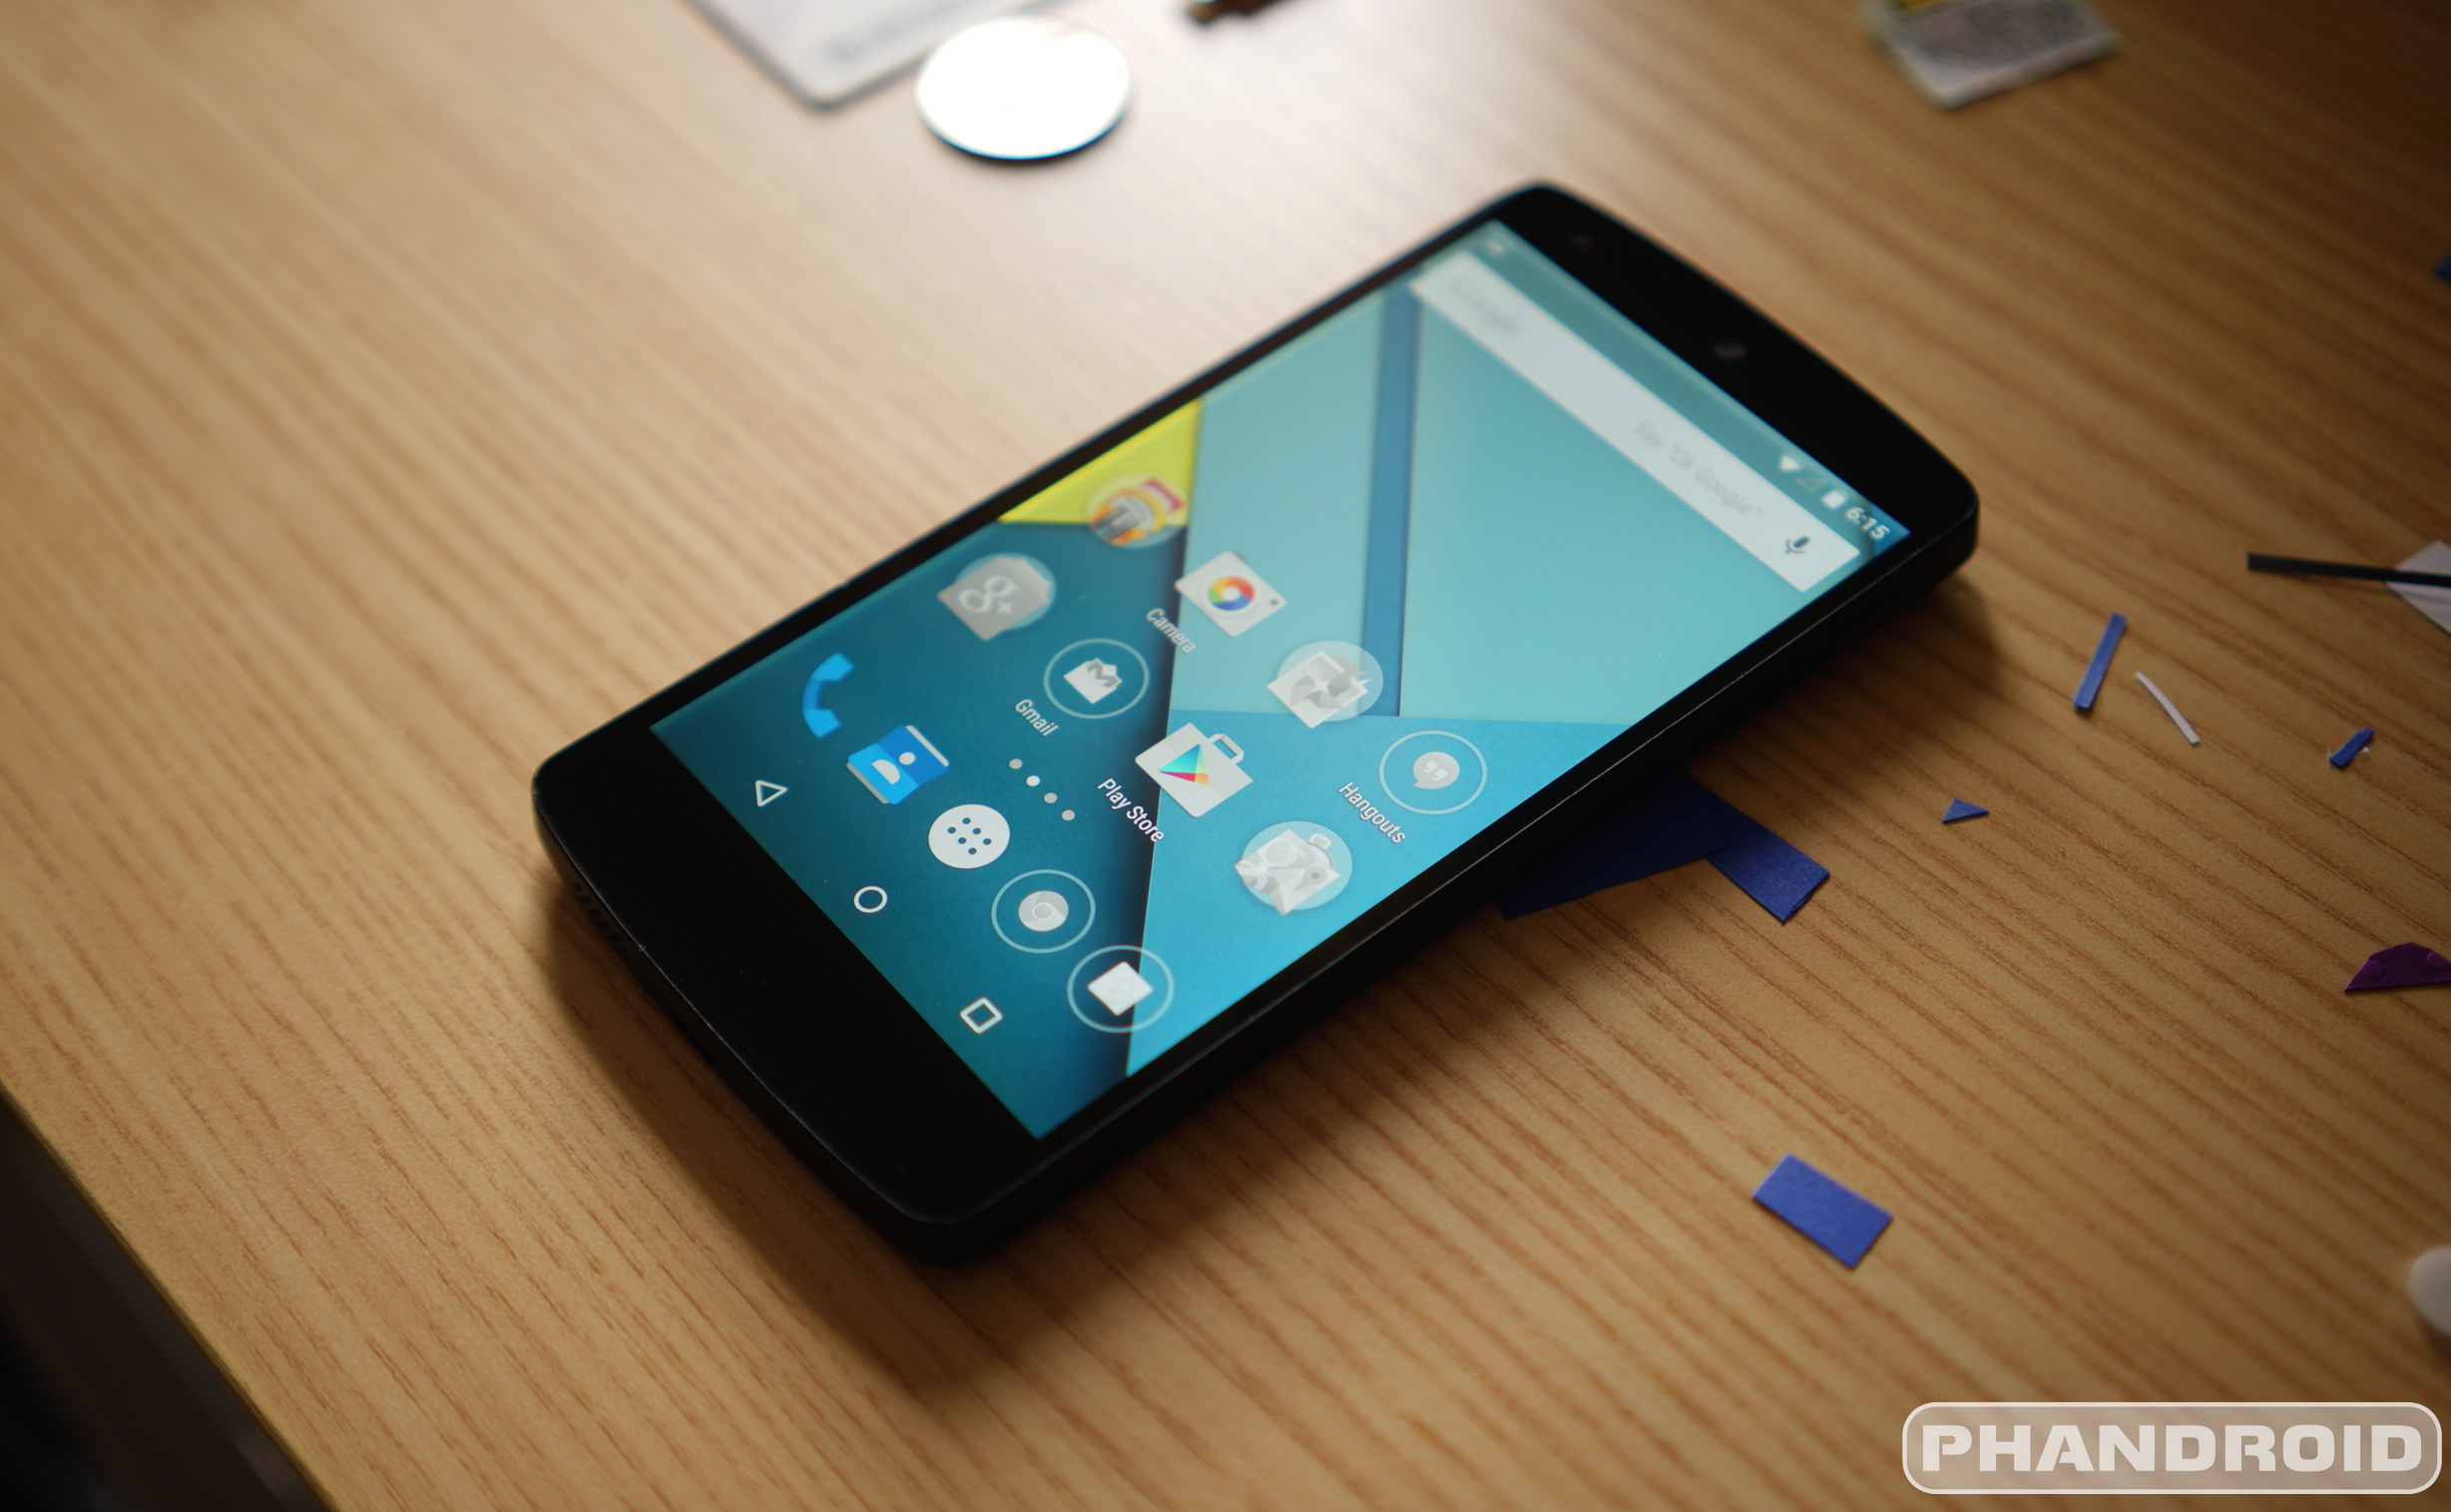 Android 5 0 1 lrx22c hits aosp factory images and ota update coming